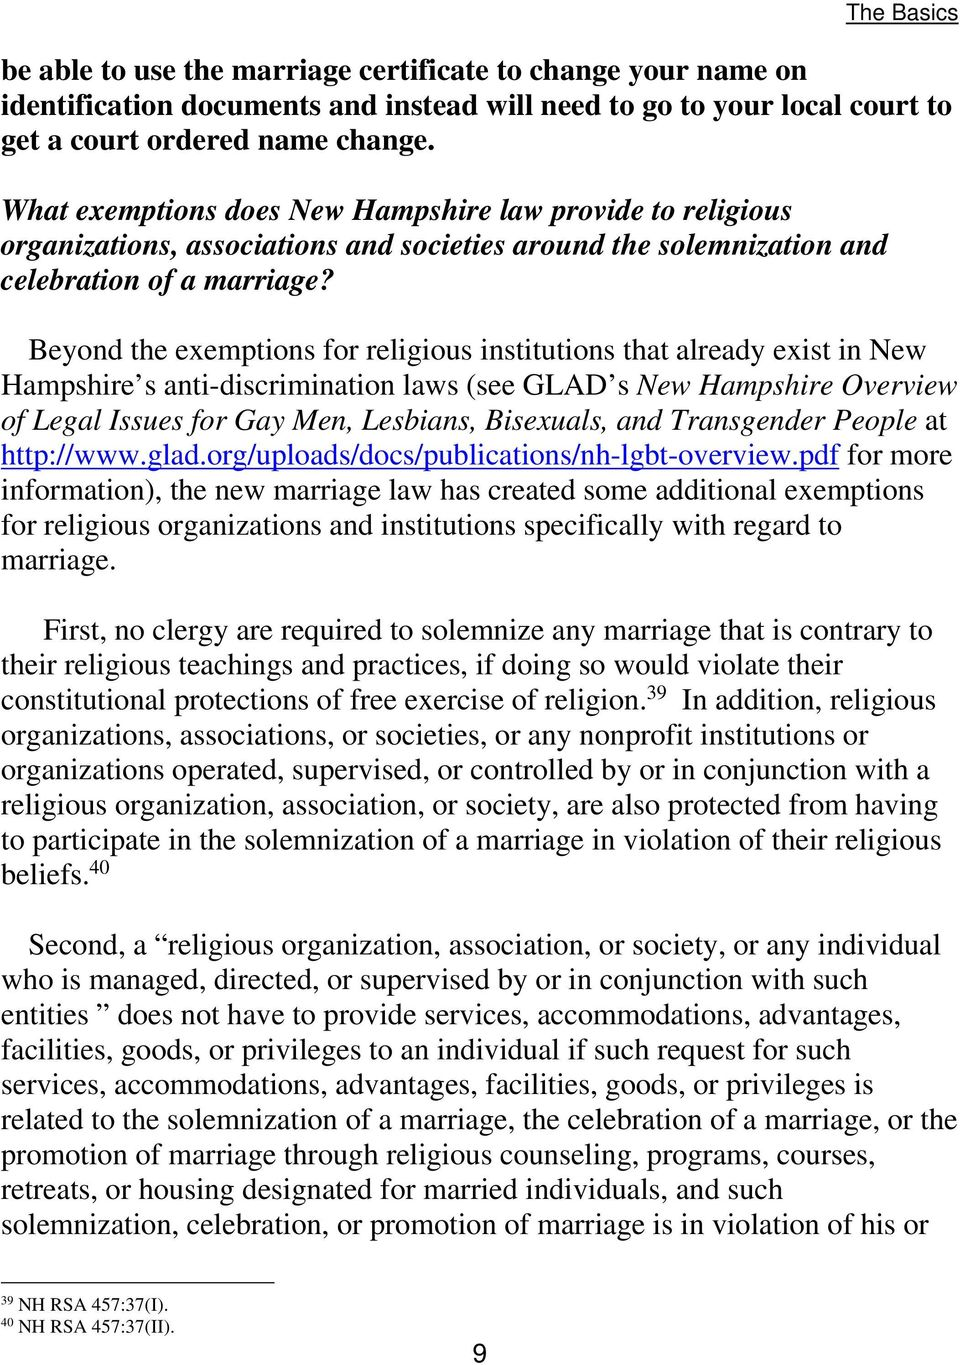 Beyond the exemptions for religious institutions that already exist in New Hampshire s anti-discrimination laws (see GLAD s New Hampshire Overview of Legal Issues for Gay Men, Lesbians, Bisexuals,